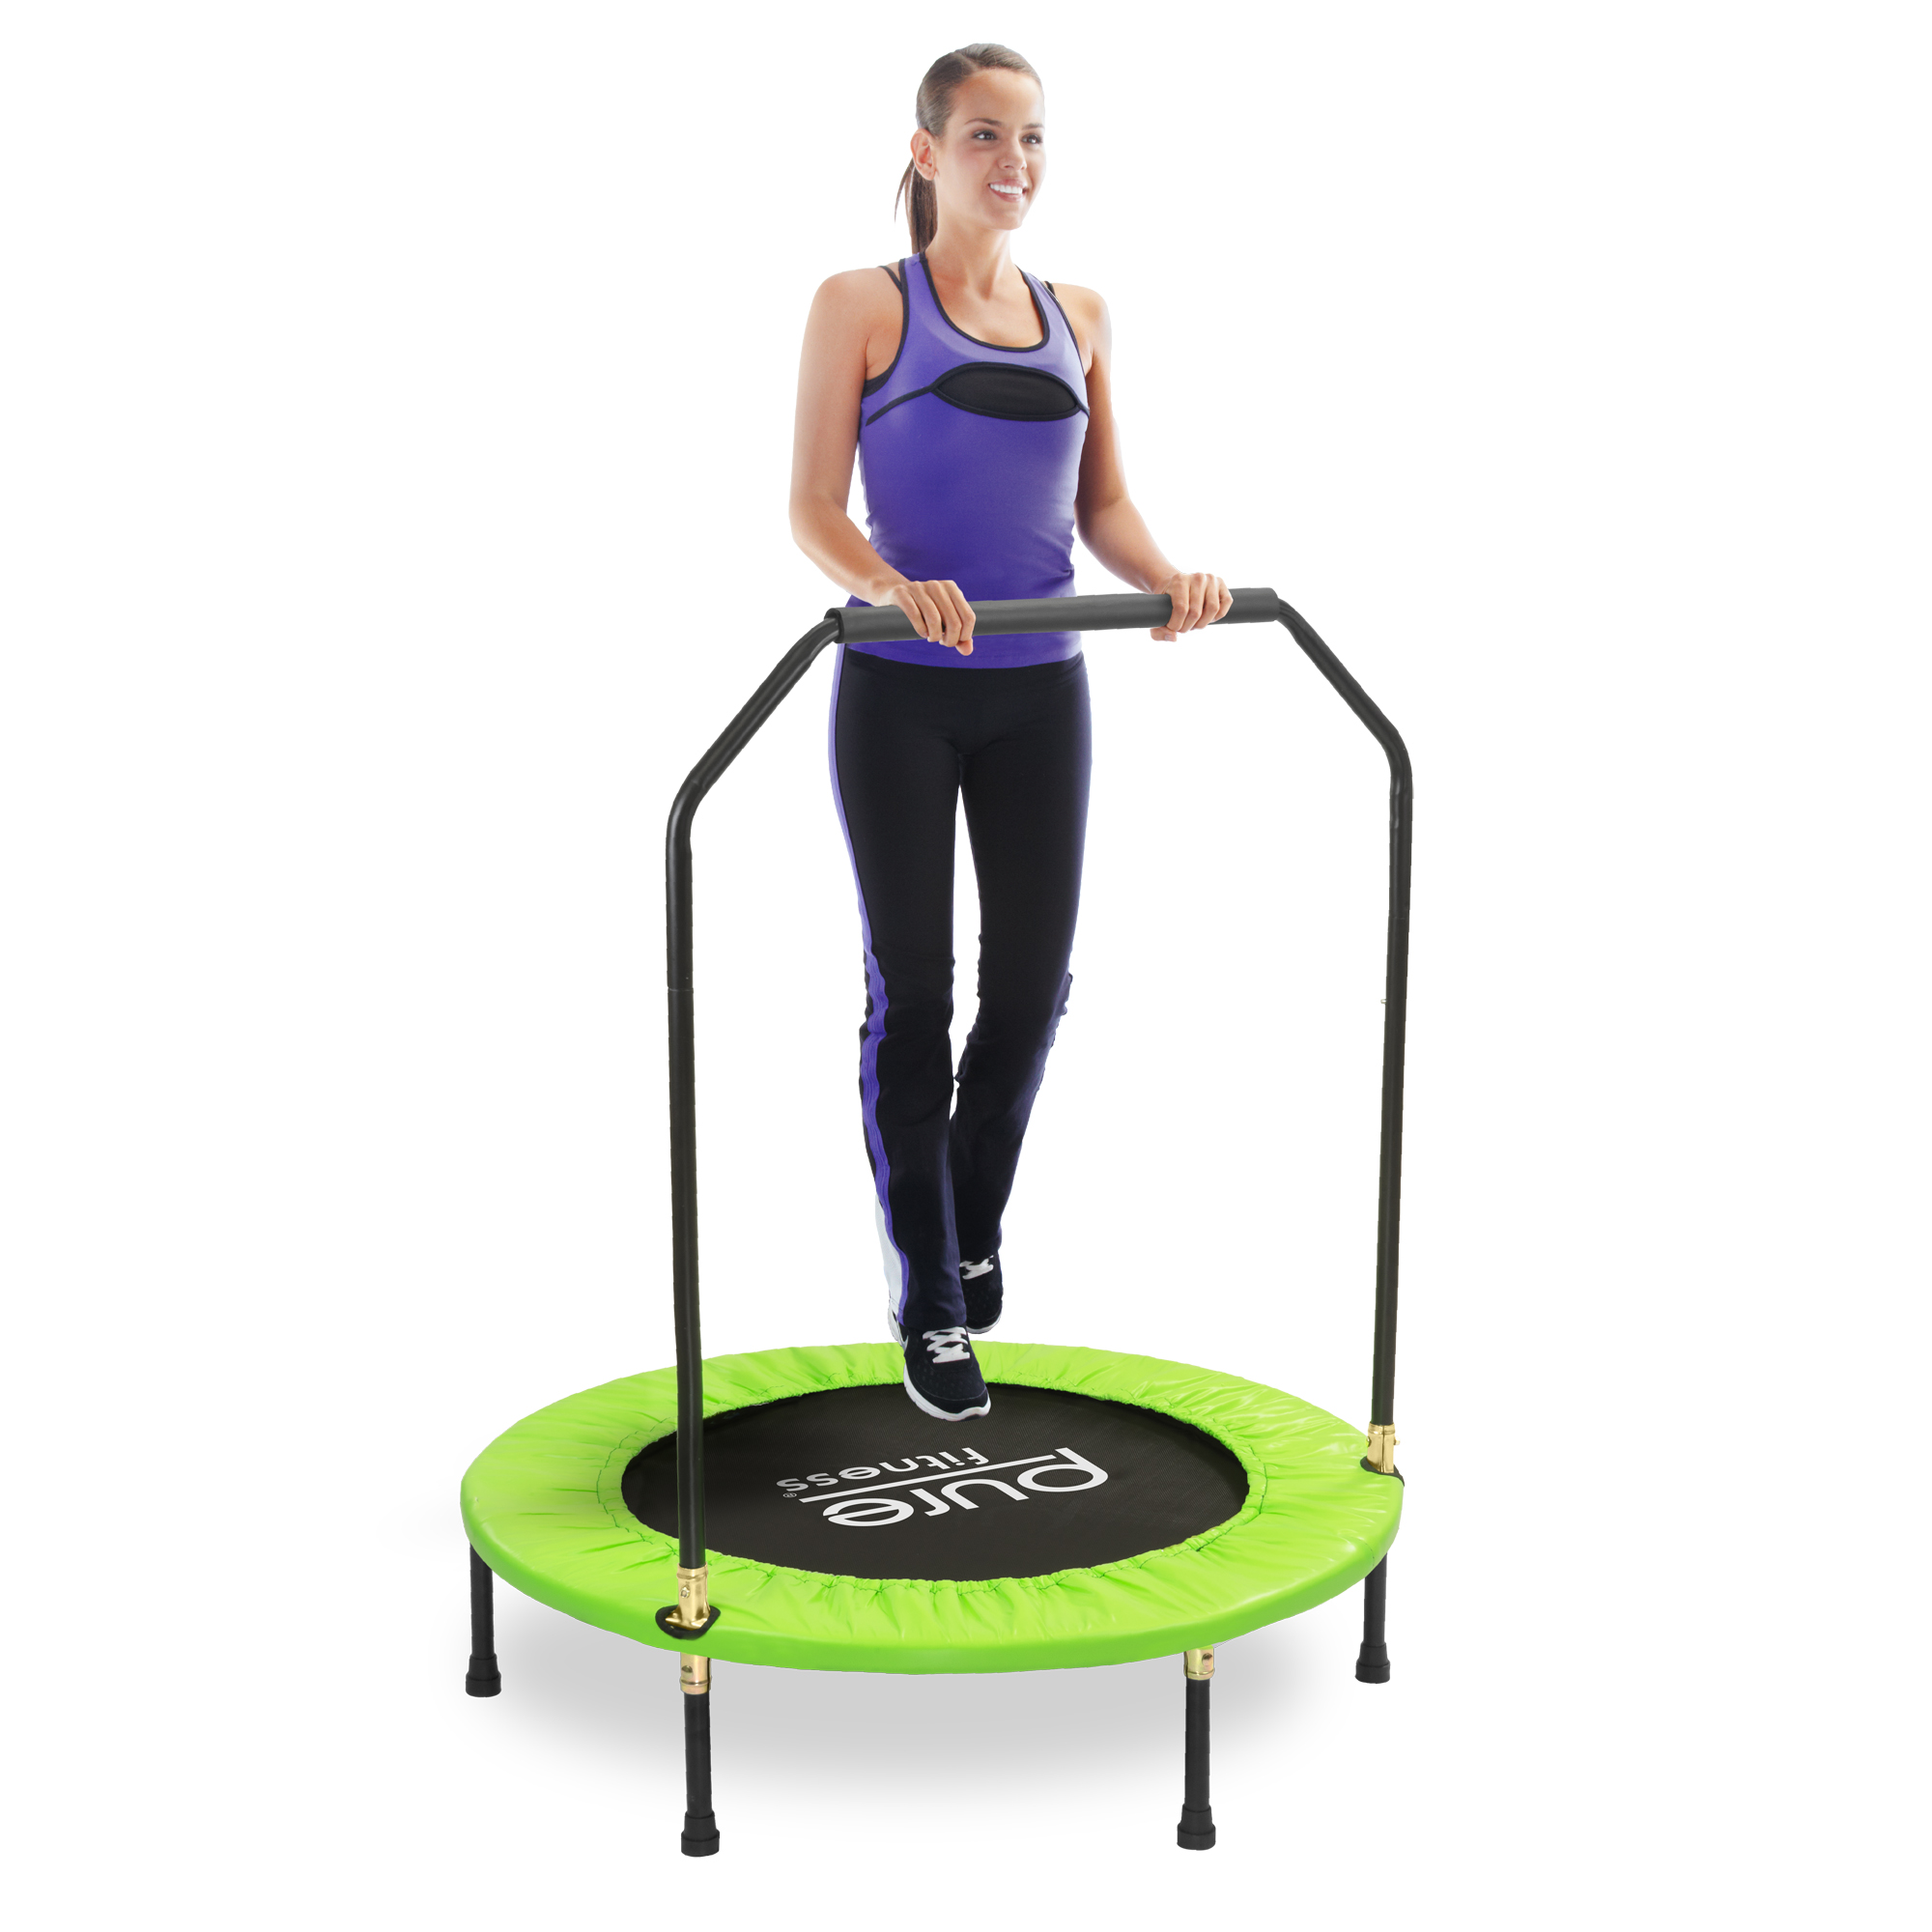 Pure Fun 40-Inch Exercise Trampoline, with Handrail, Green